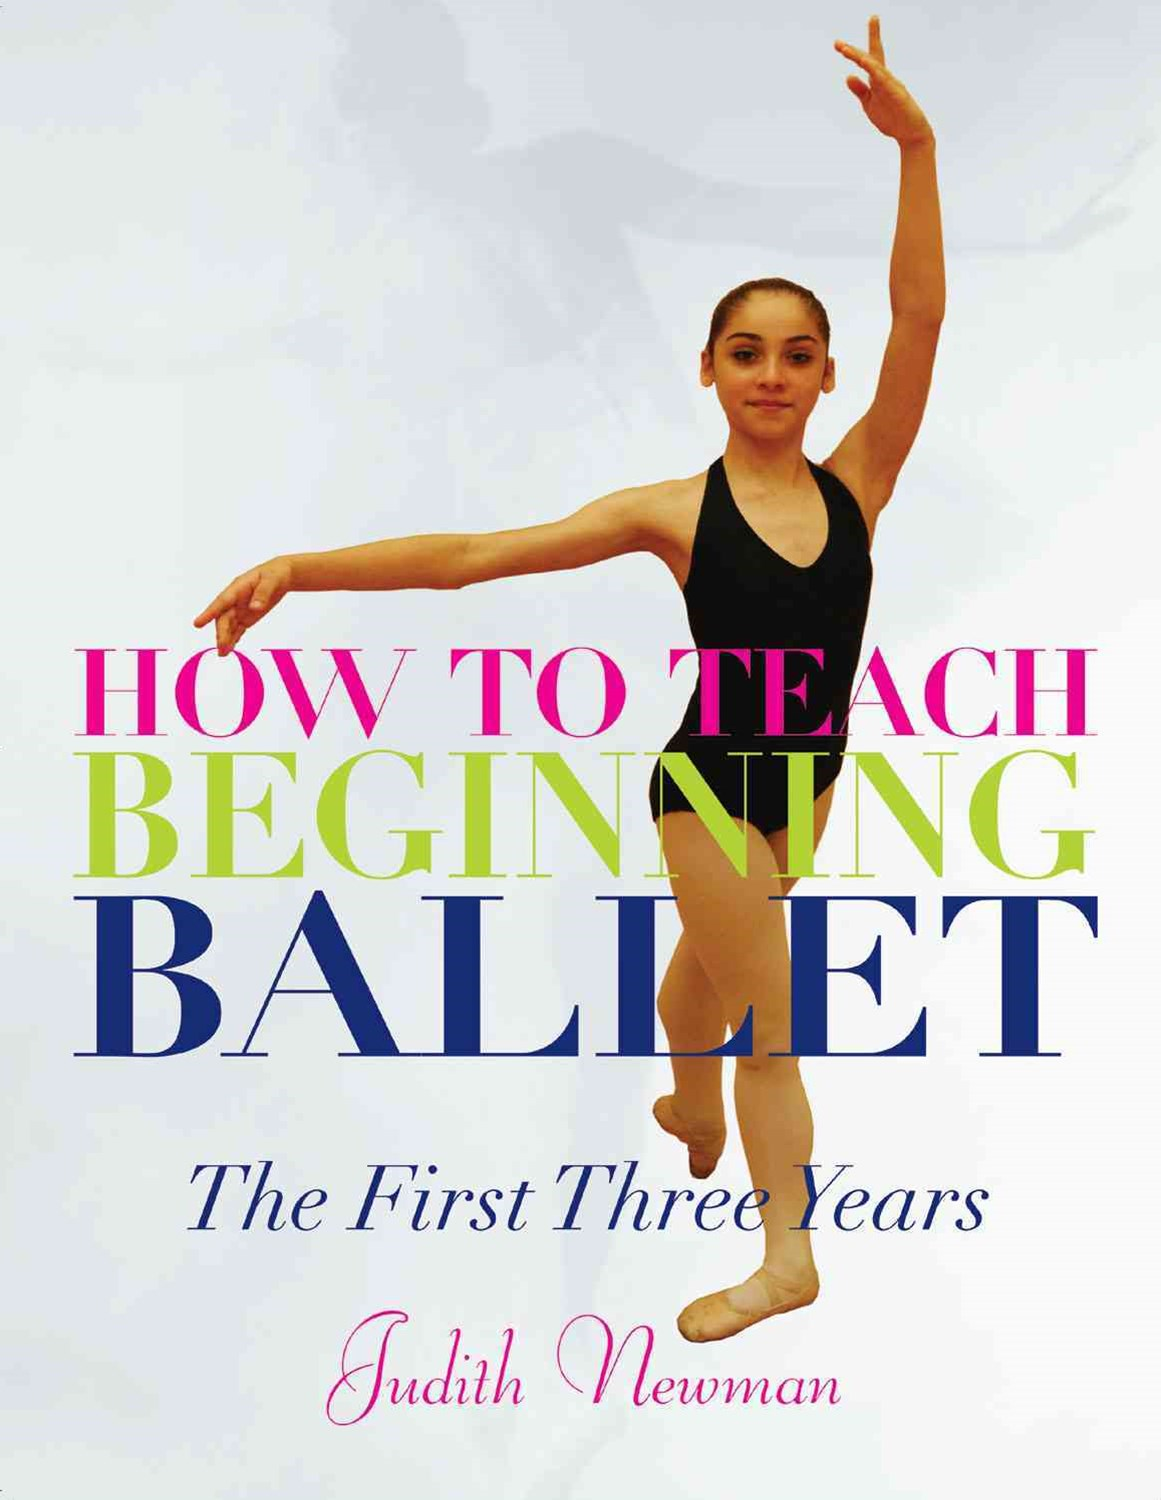 How to Teach Beginning Ballet